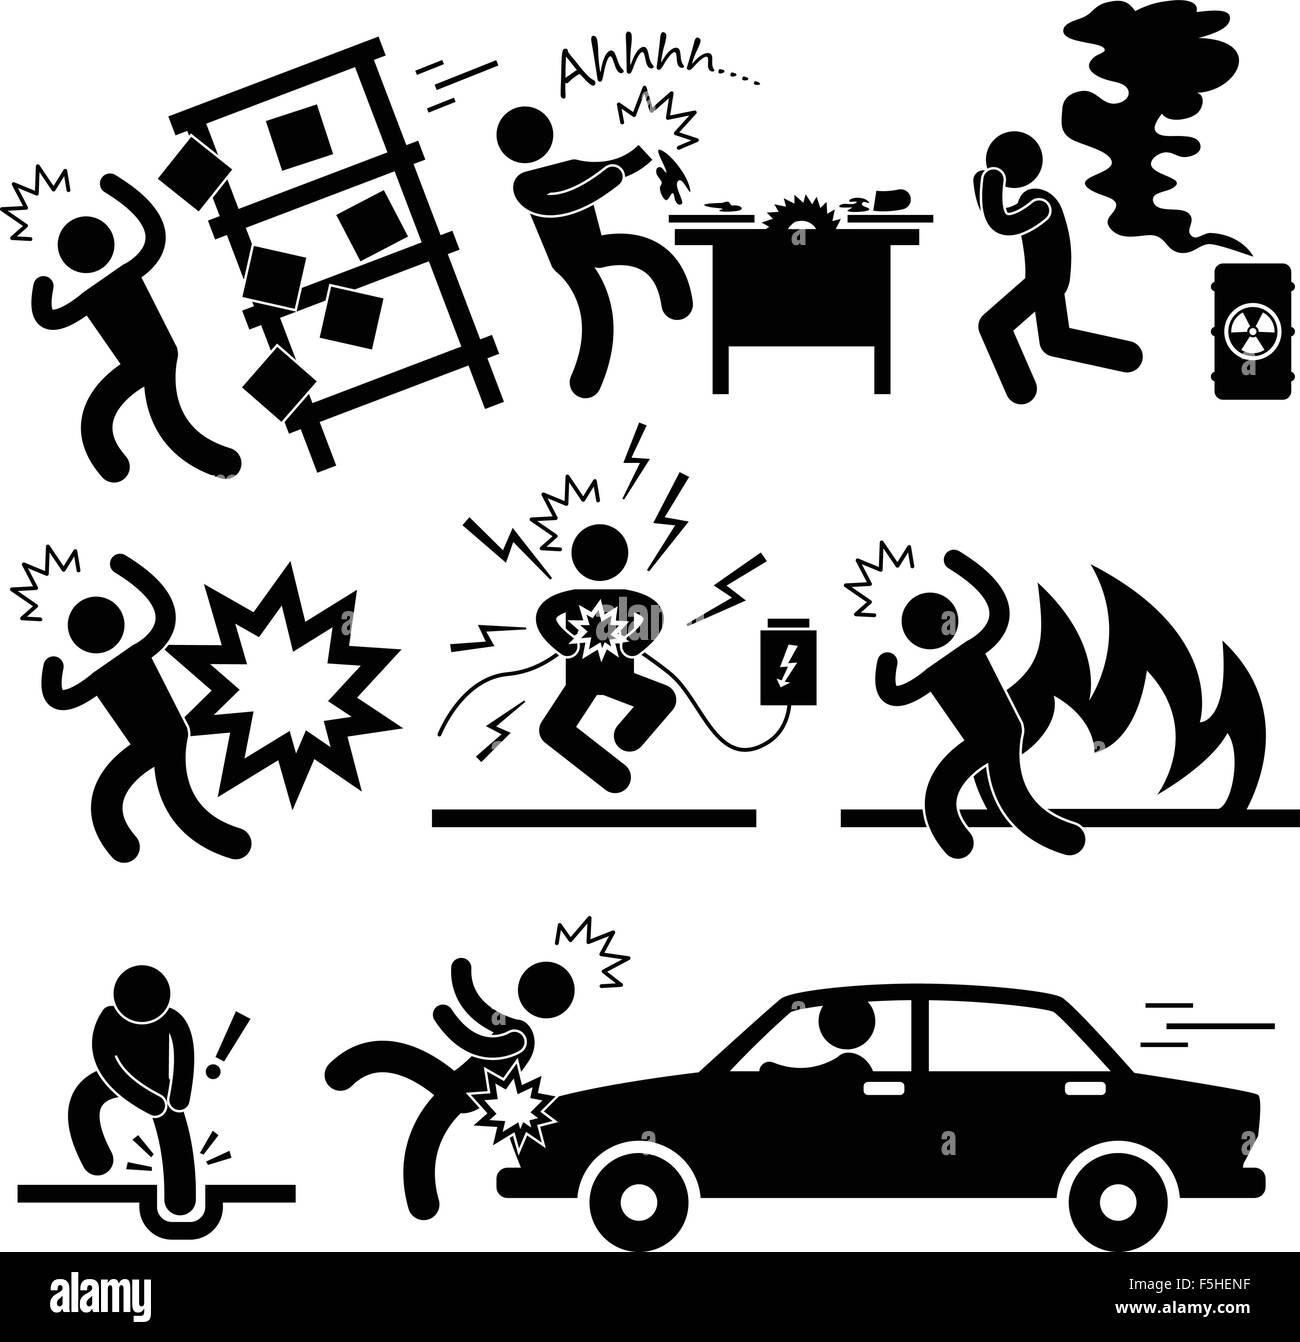 car accident explosion electrocuted fire danger icon clip art explosion happy clip art explosion black women